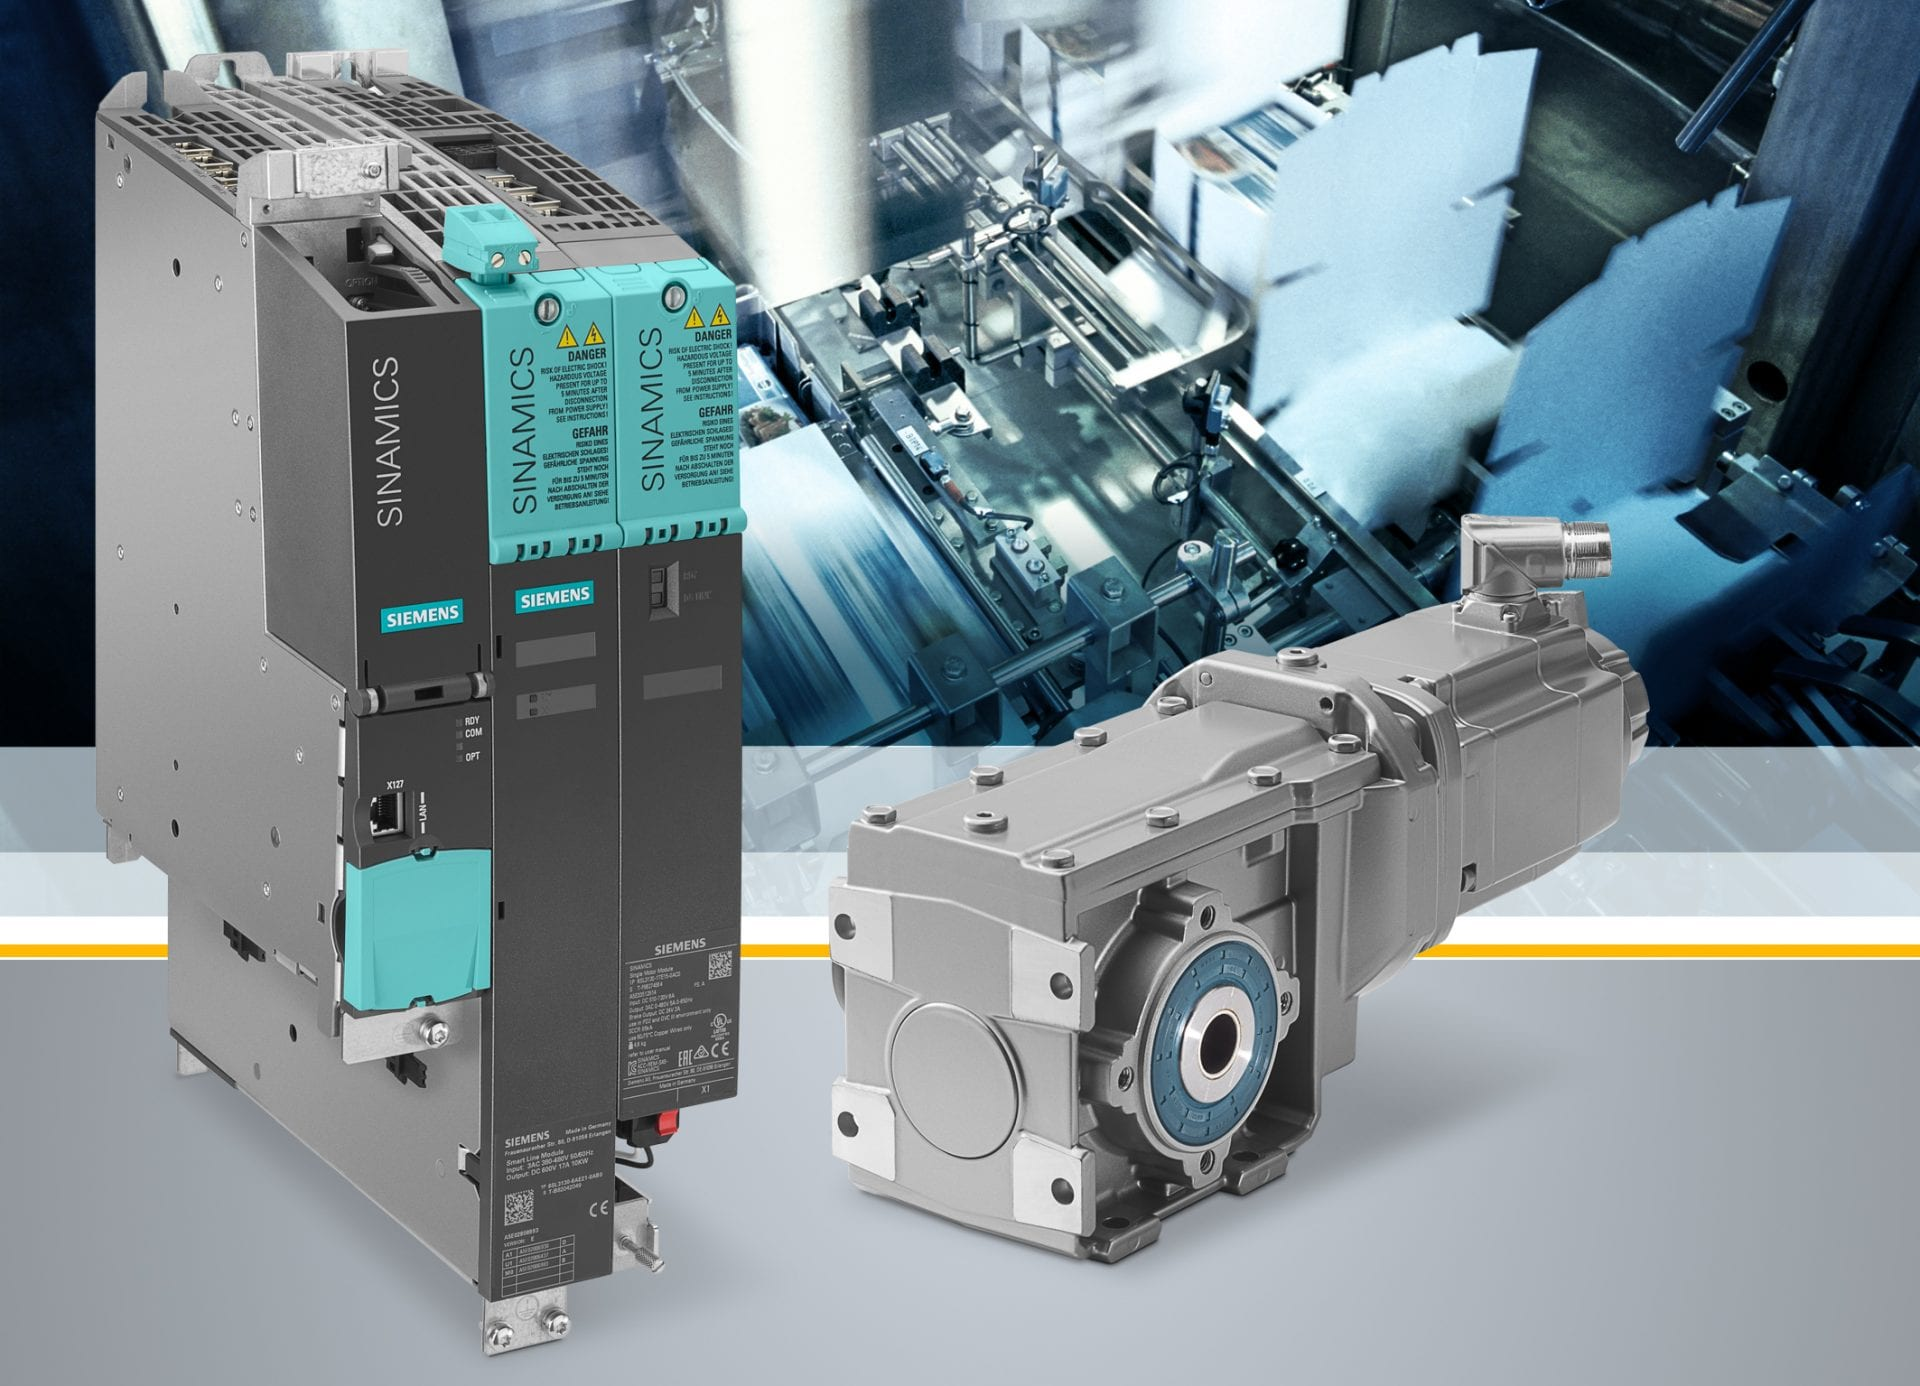 Siemens General Motion Control Archives Bernard And Company